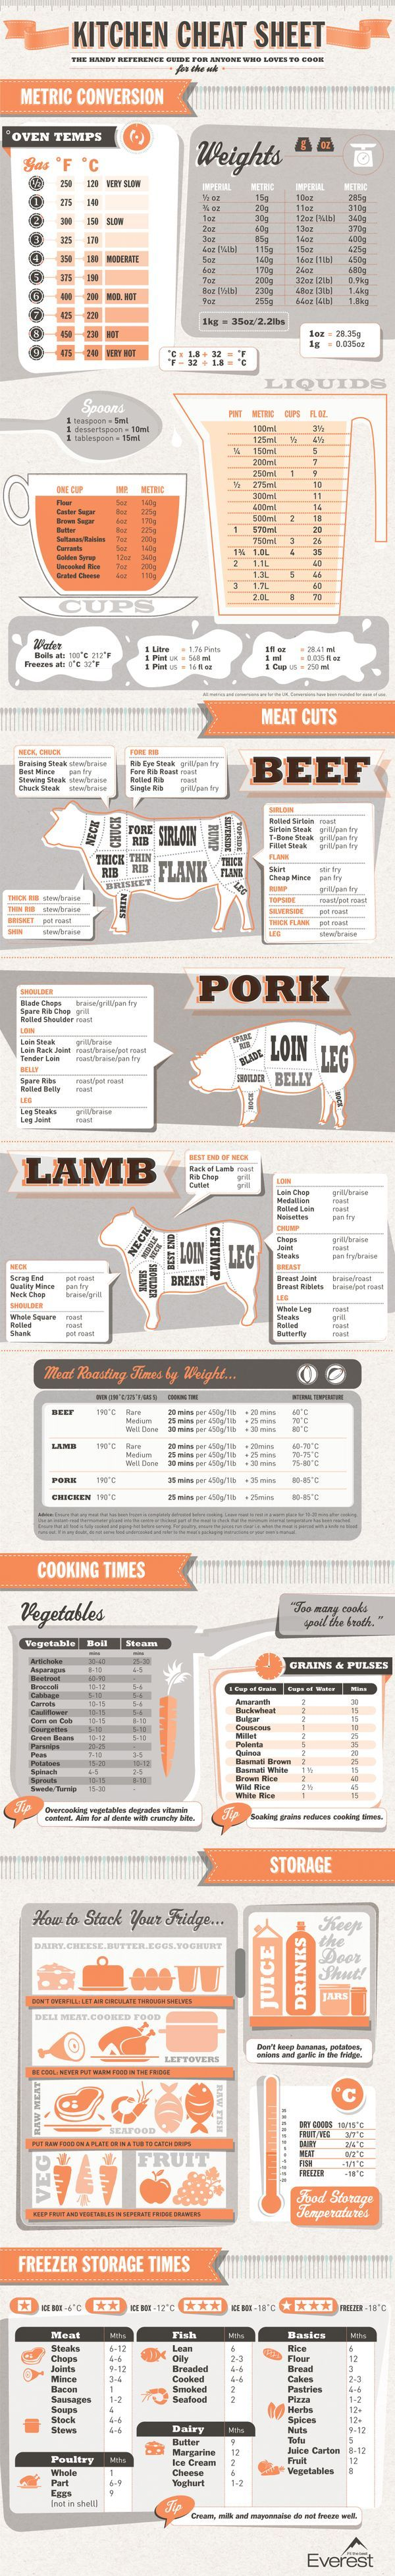 Kitchen Cheat Sheet | 101 Cooking for Two